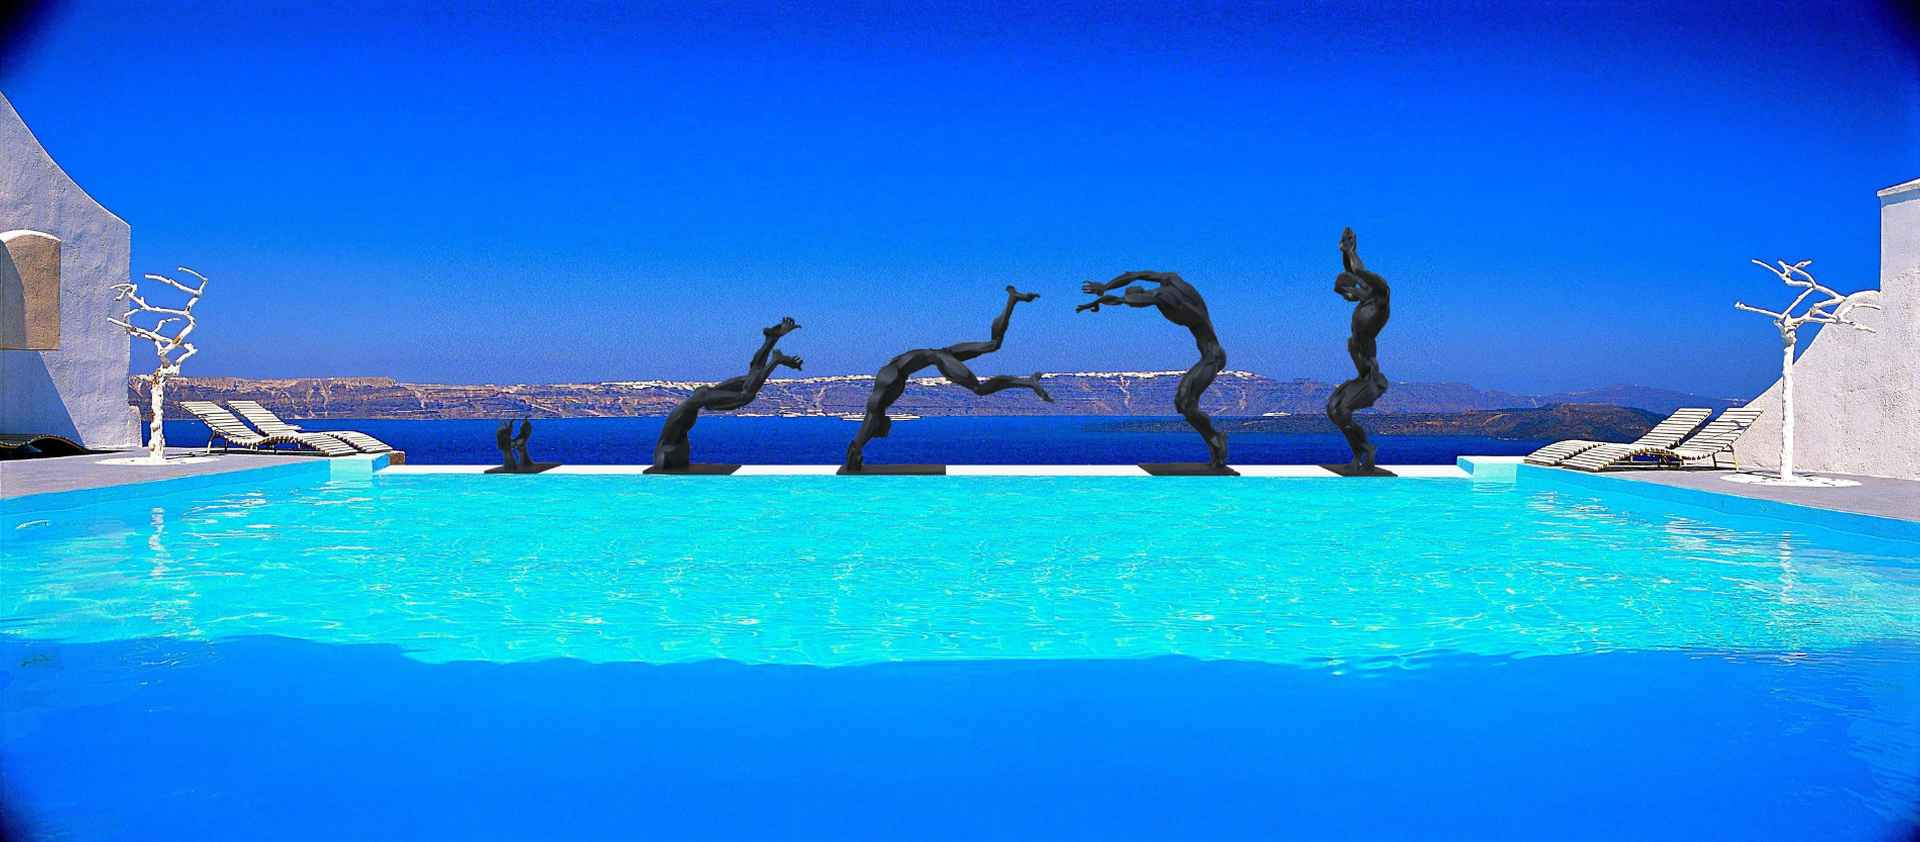 Divers by Sophie Dickens